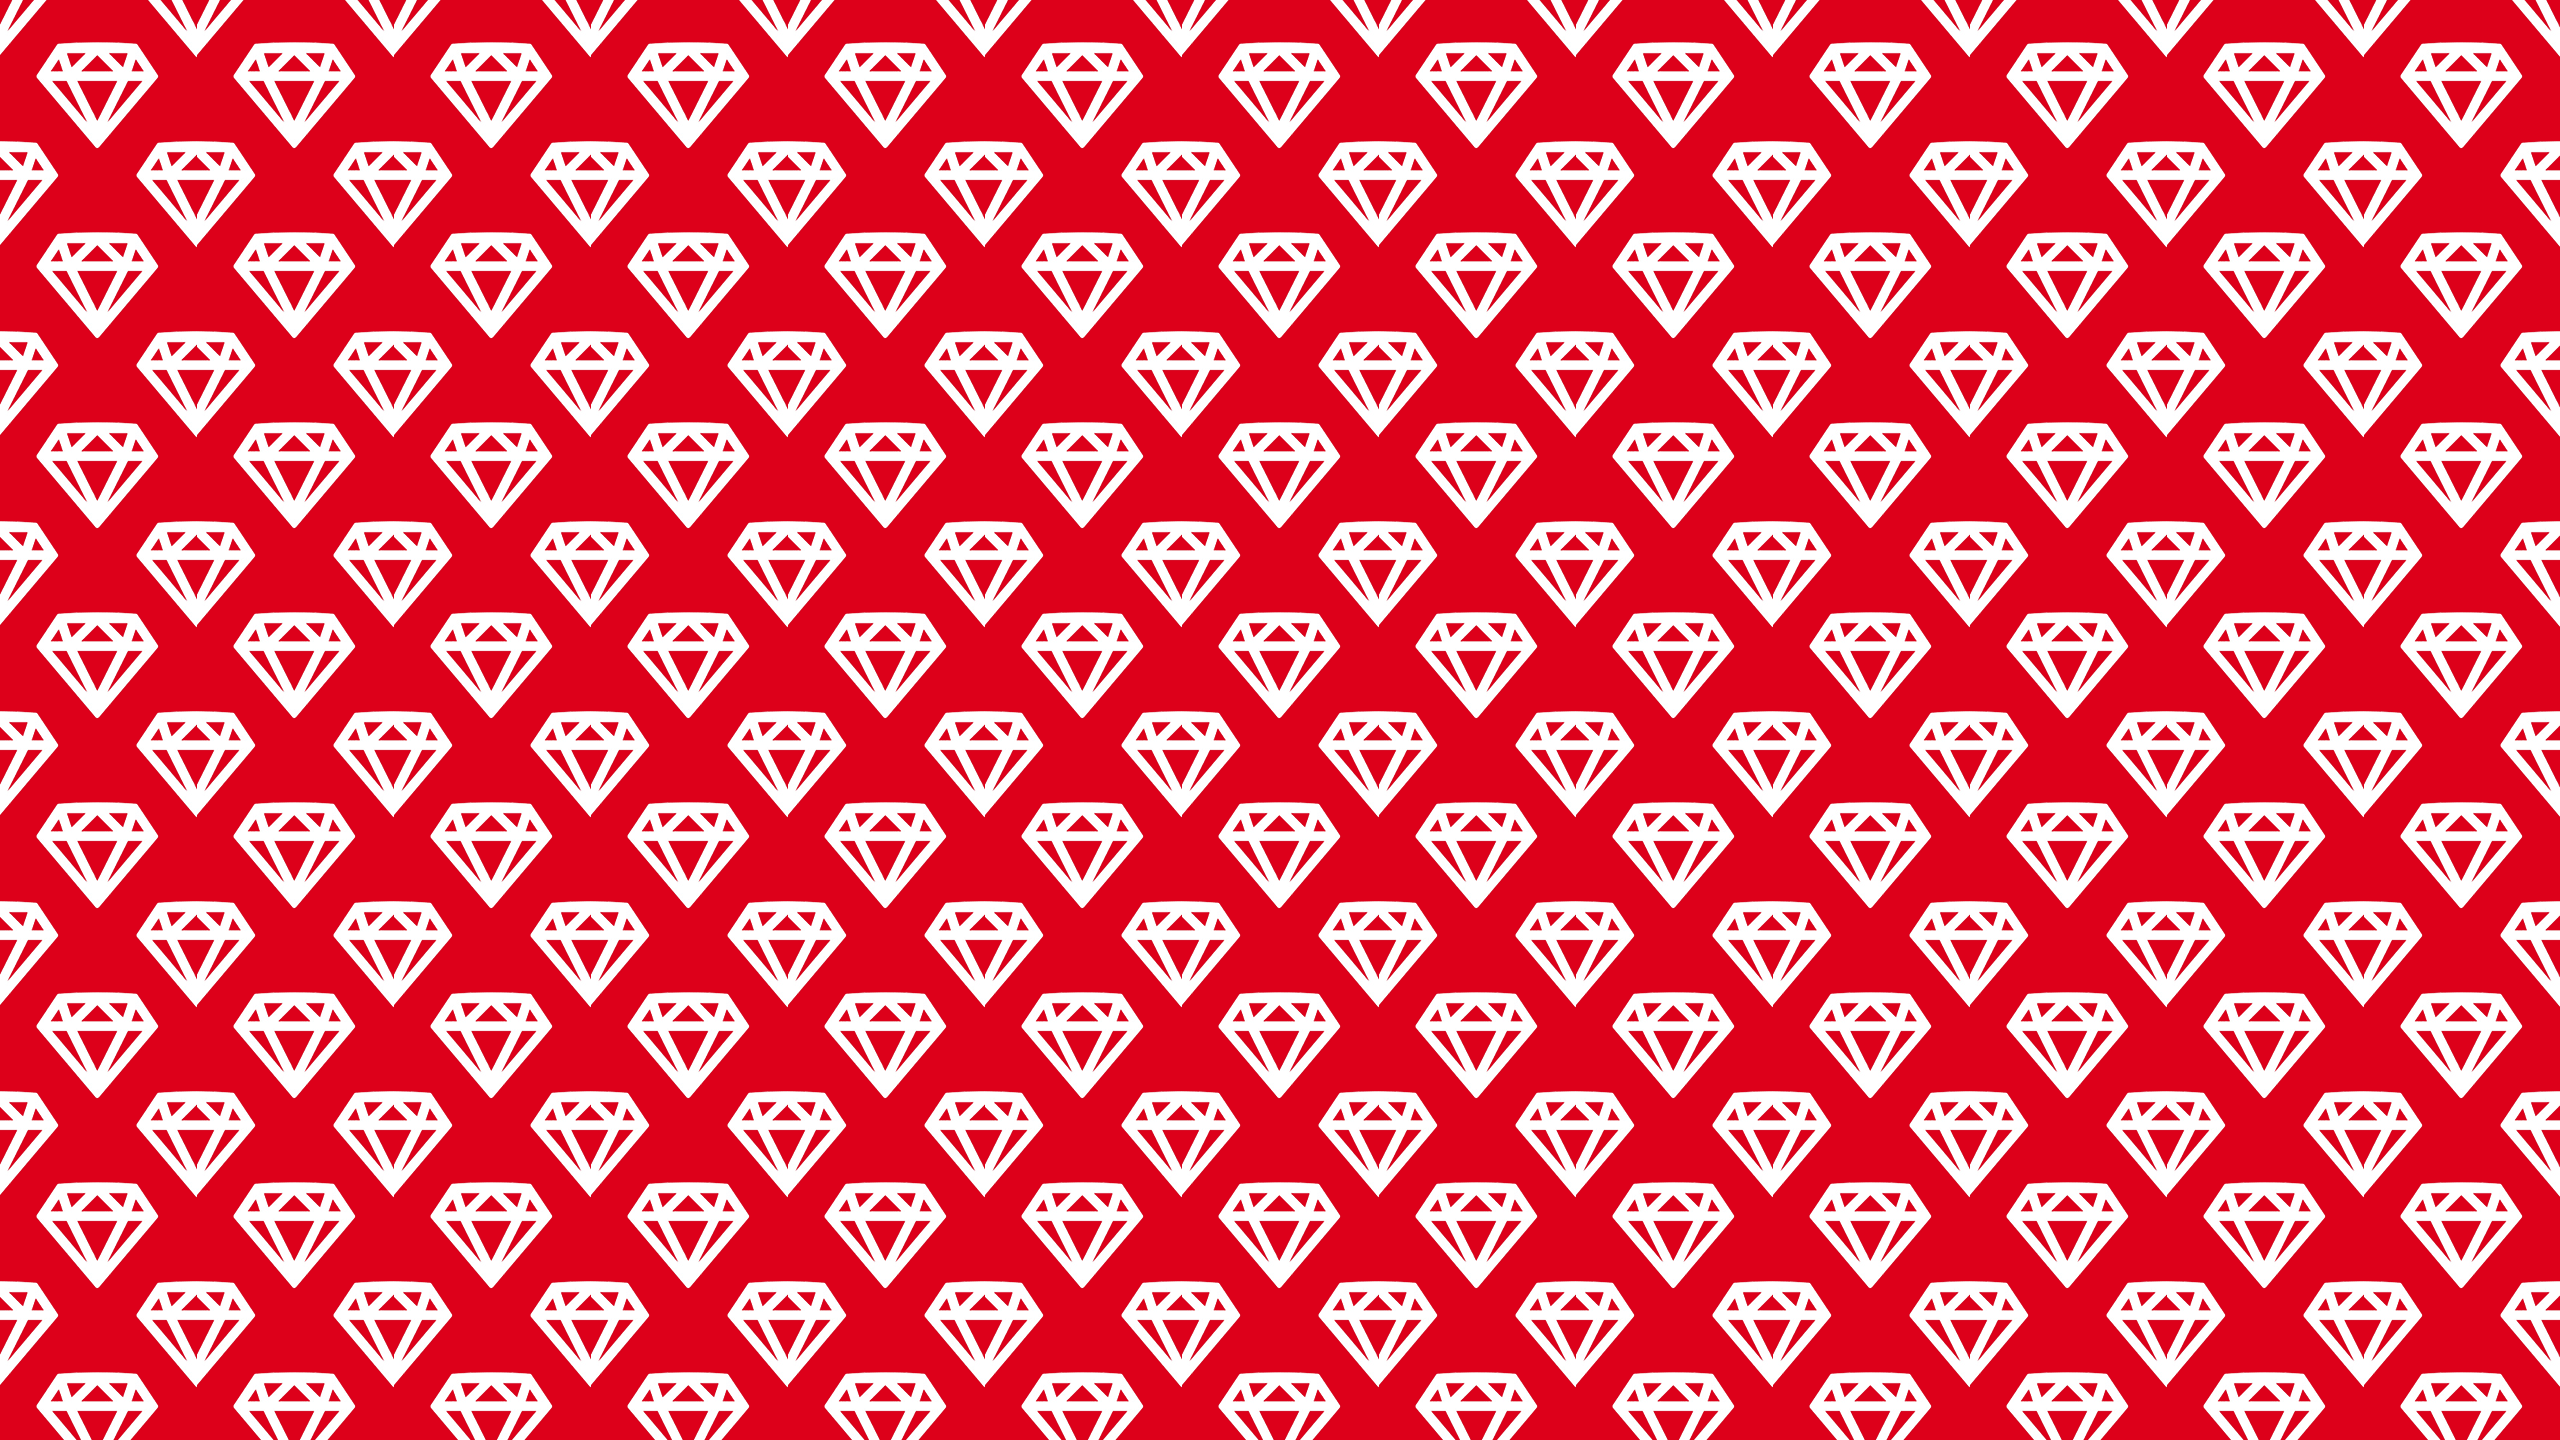 Red White Diamonds Desktop Wallpaper is easy Just save the wallpaper 2560x1440